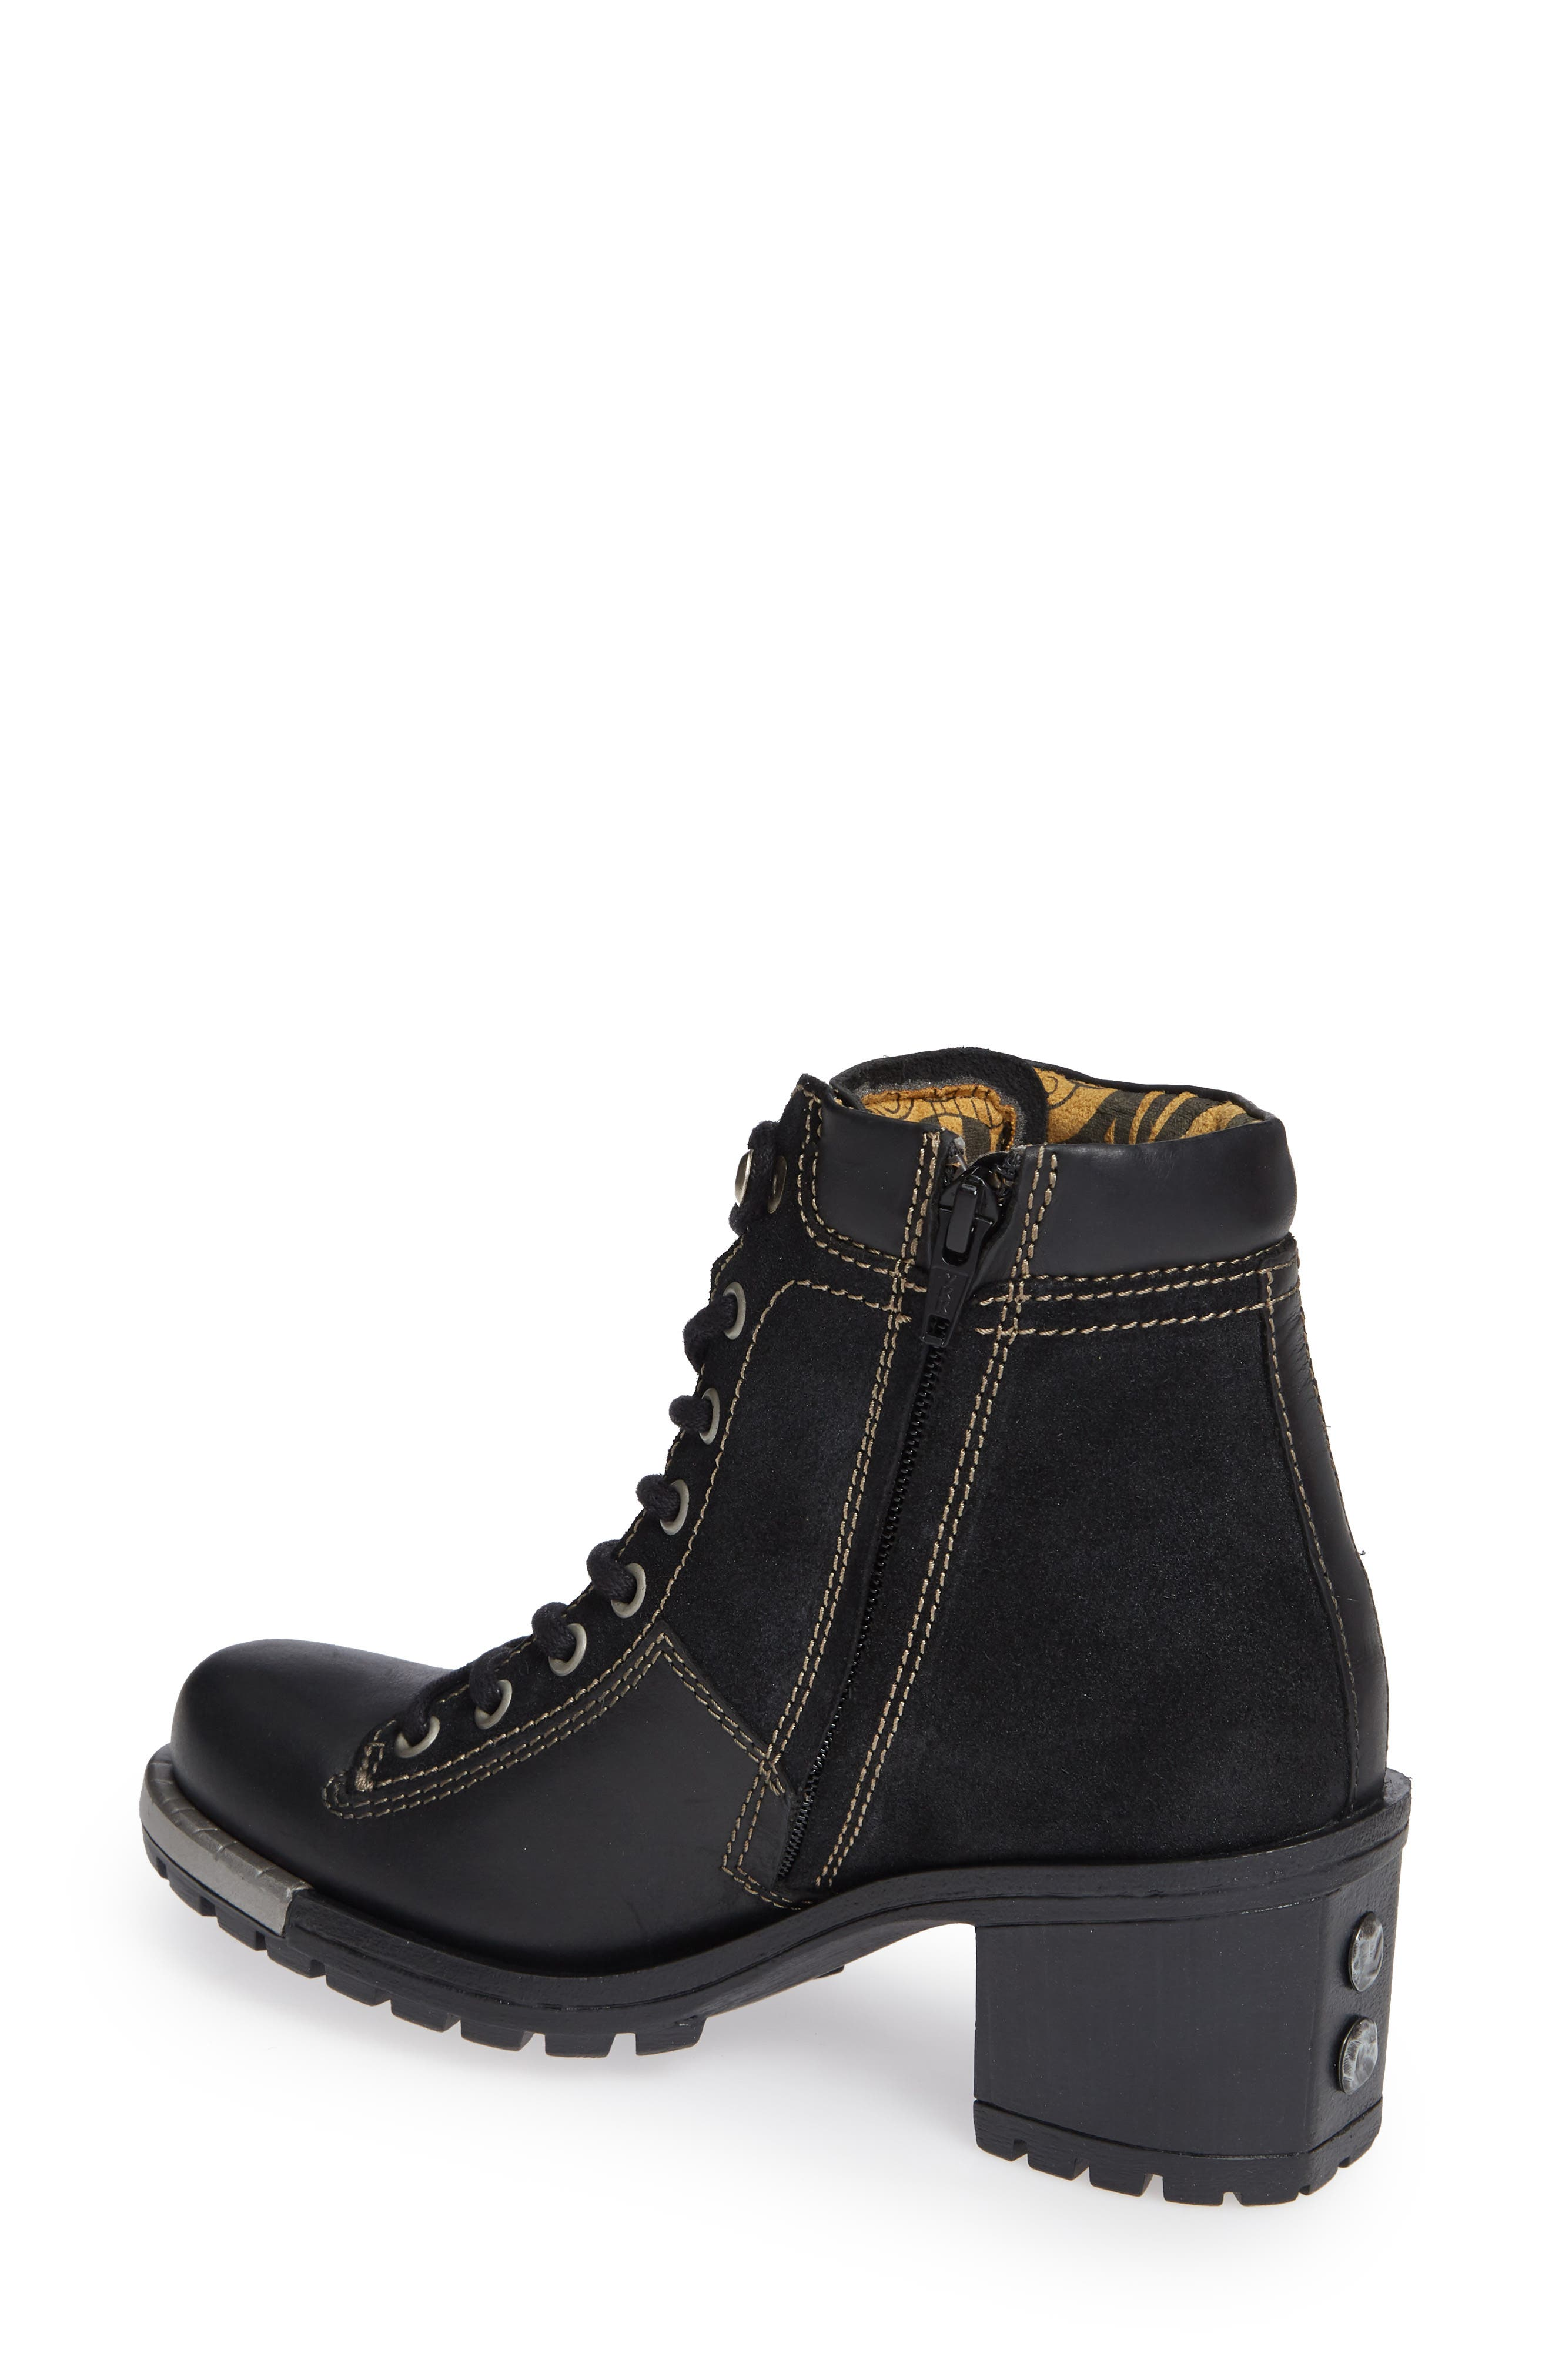 'Leal' Boot,                             Alternate thumbnail 2, color,                             BLACK/ ANTHRACITE